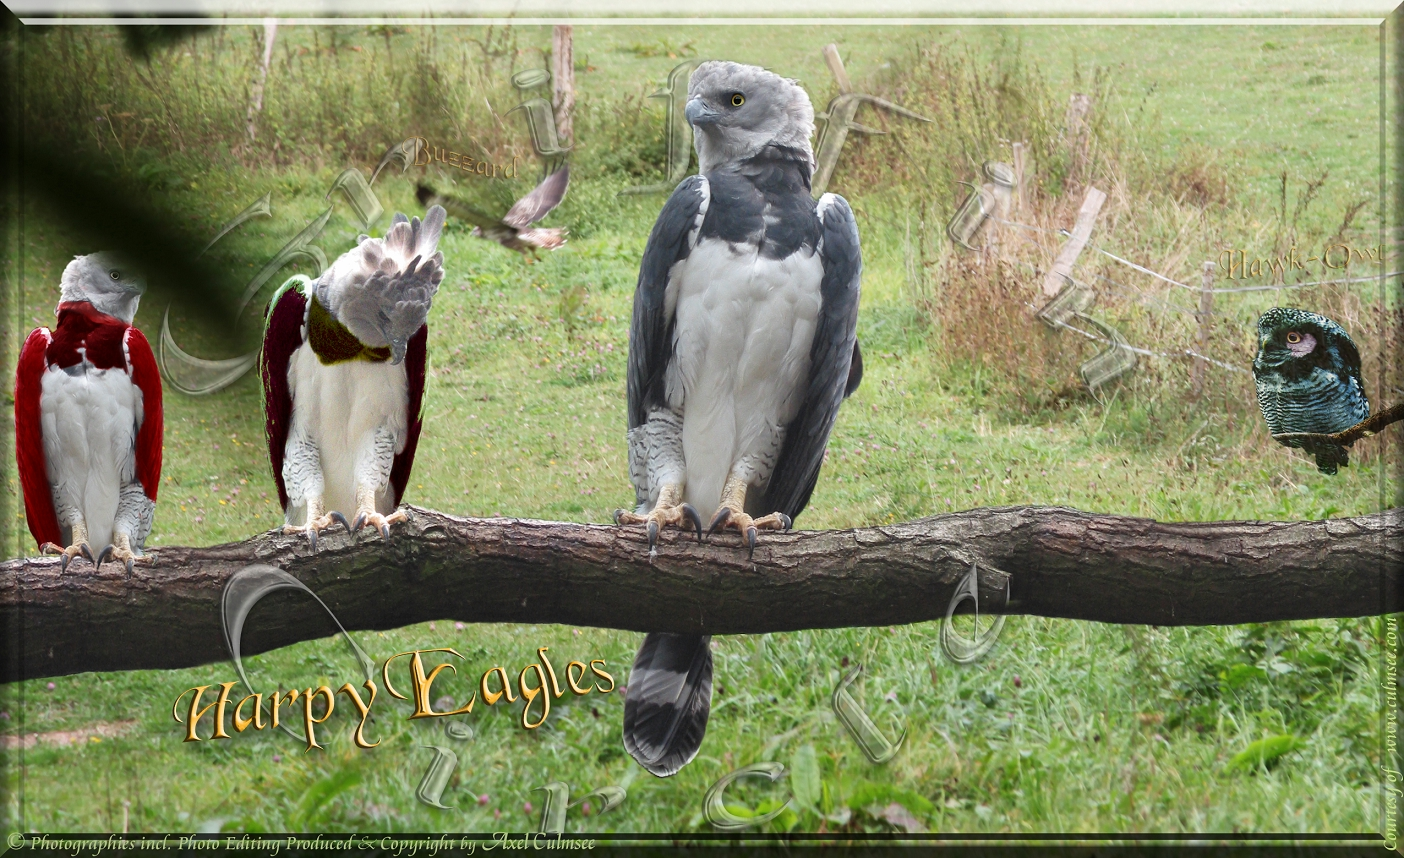 Harpy Eagles meeting at Griffin circle